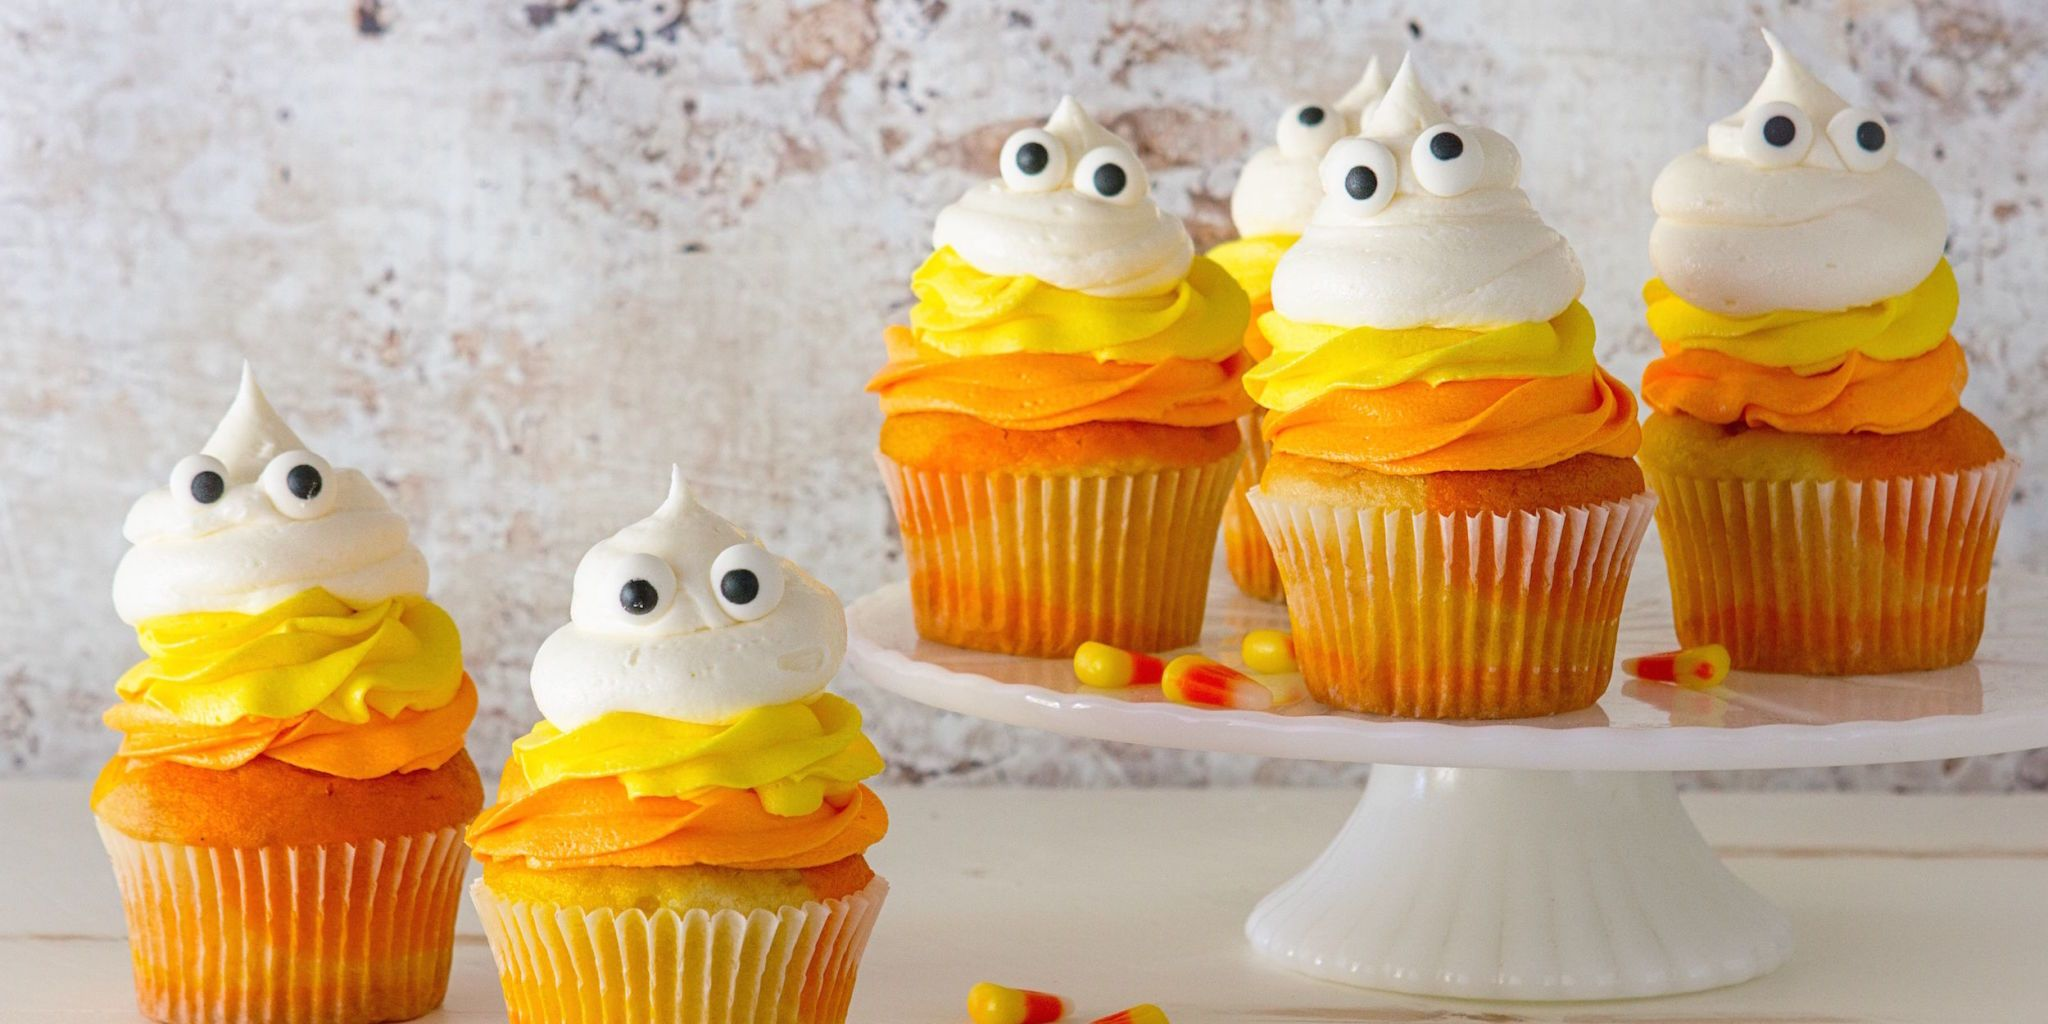 15 Halloween Desserts That Are Scary-Easy to Make